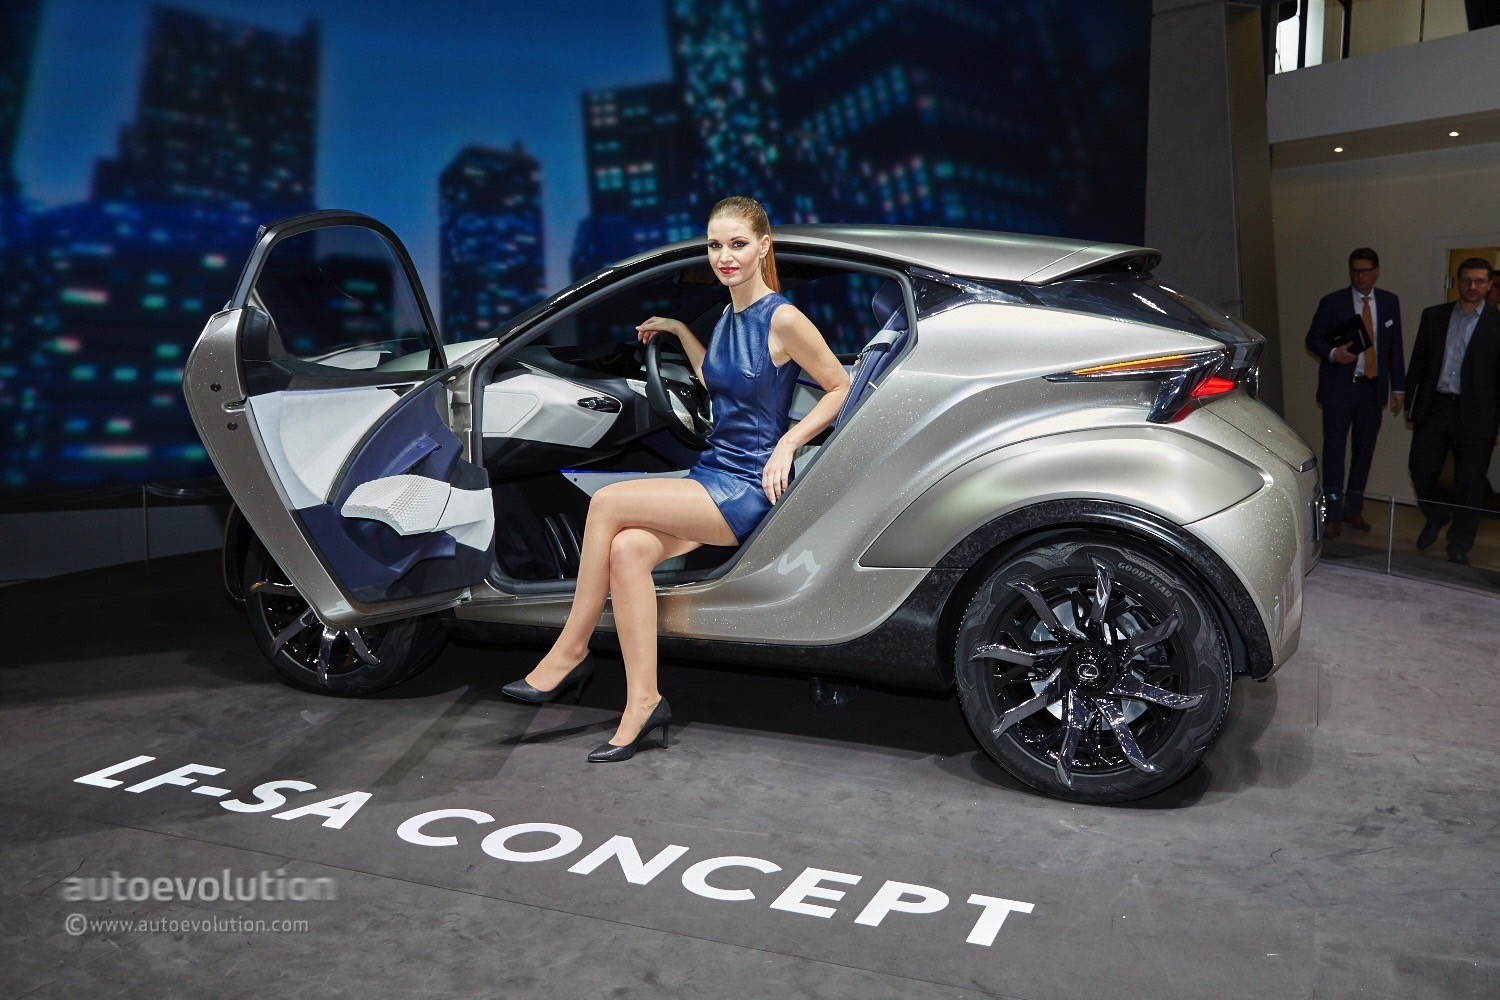 https://s1.cdn.autoevolution.com/images/news/gallery/lexus-lf-sa-concept-looks-ready-to-eat-minis-and-audi-a1s-in-geneva-live-photos_1.jpg